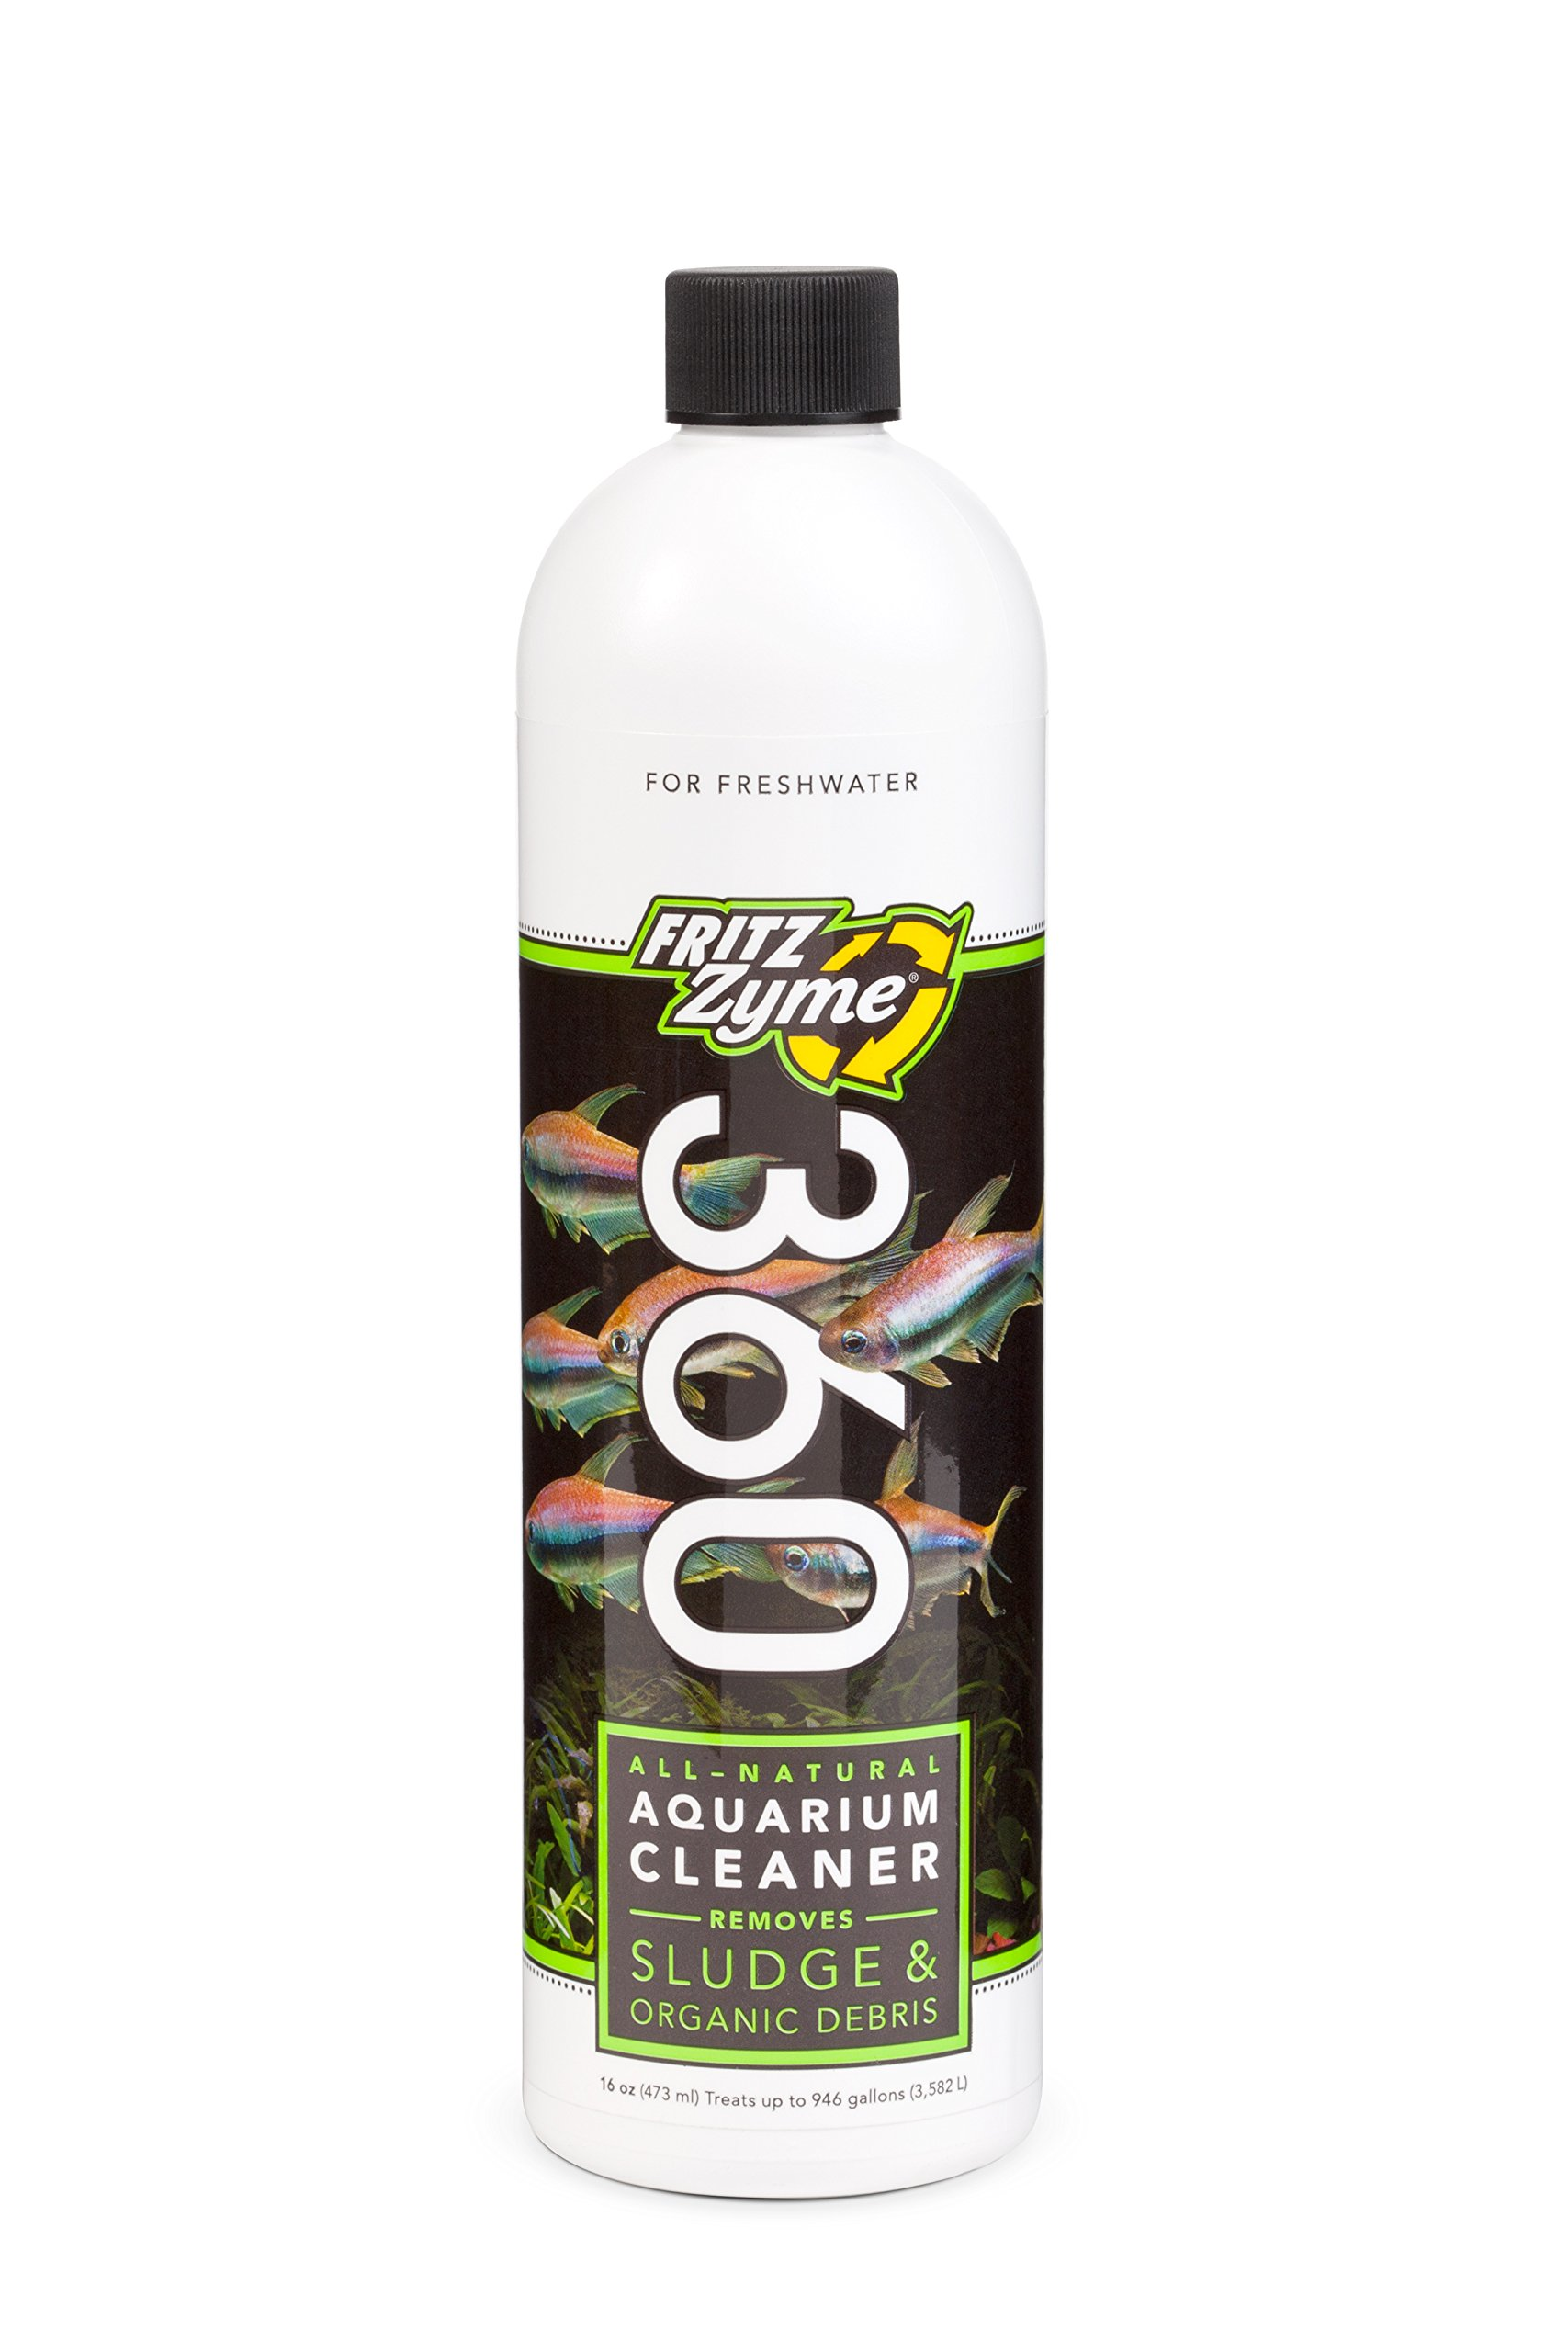 Fritz Aquatics 83303 FritzZyme 360 Biological Conditioner for Fresh Water Aquariums, 16-Ounce by Fritz Aquatics